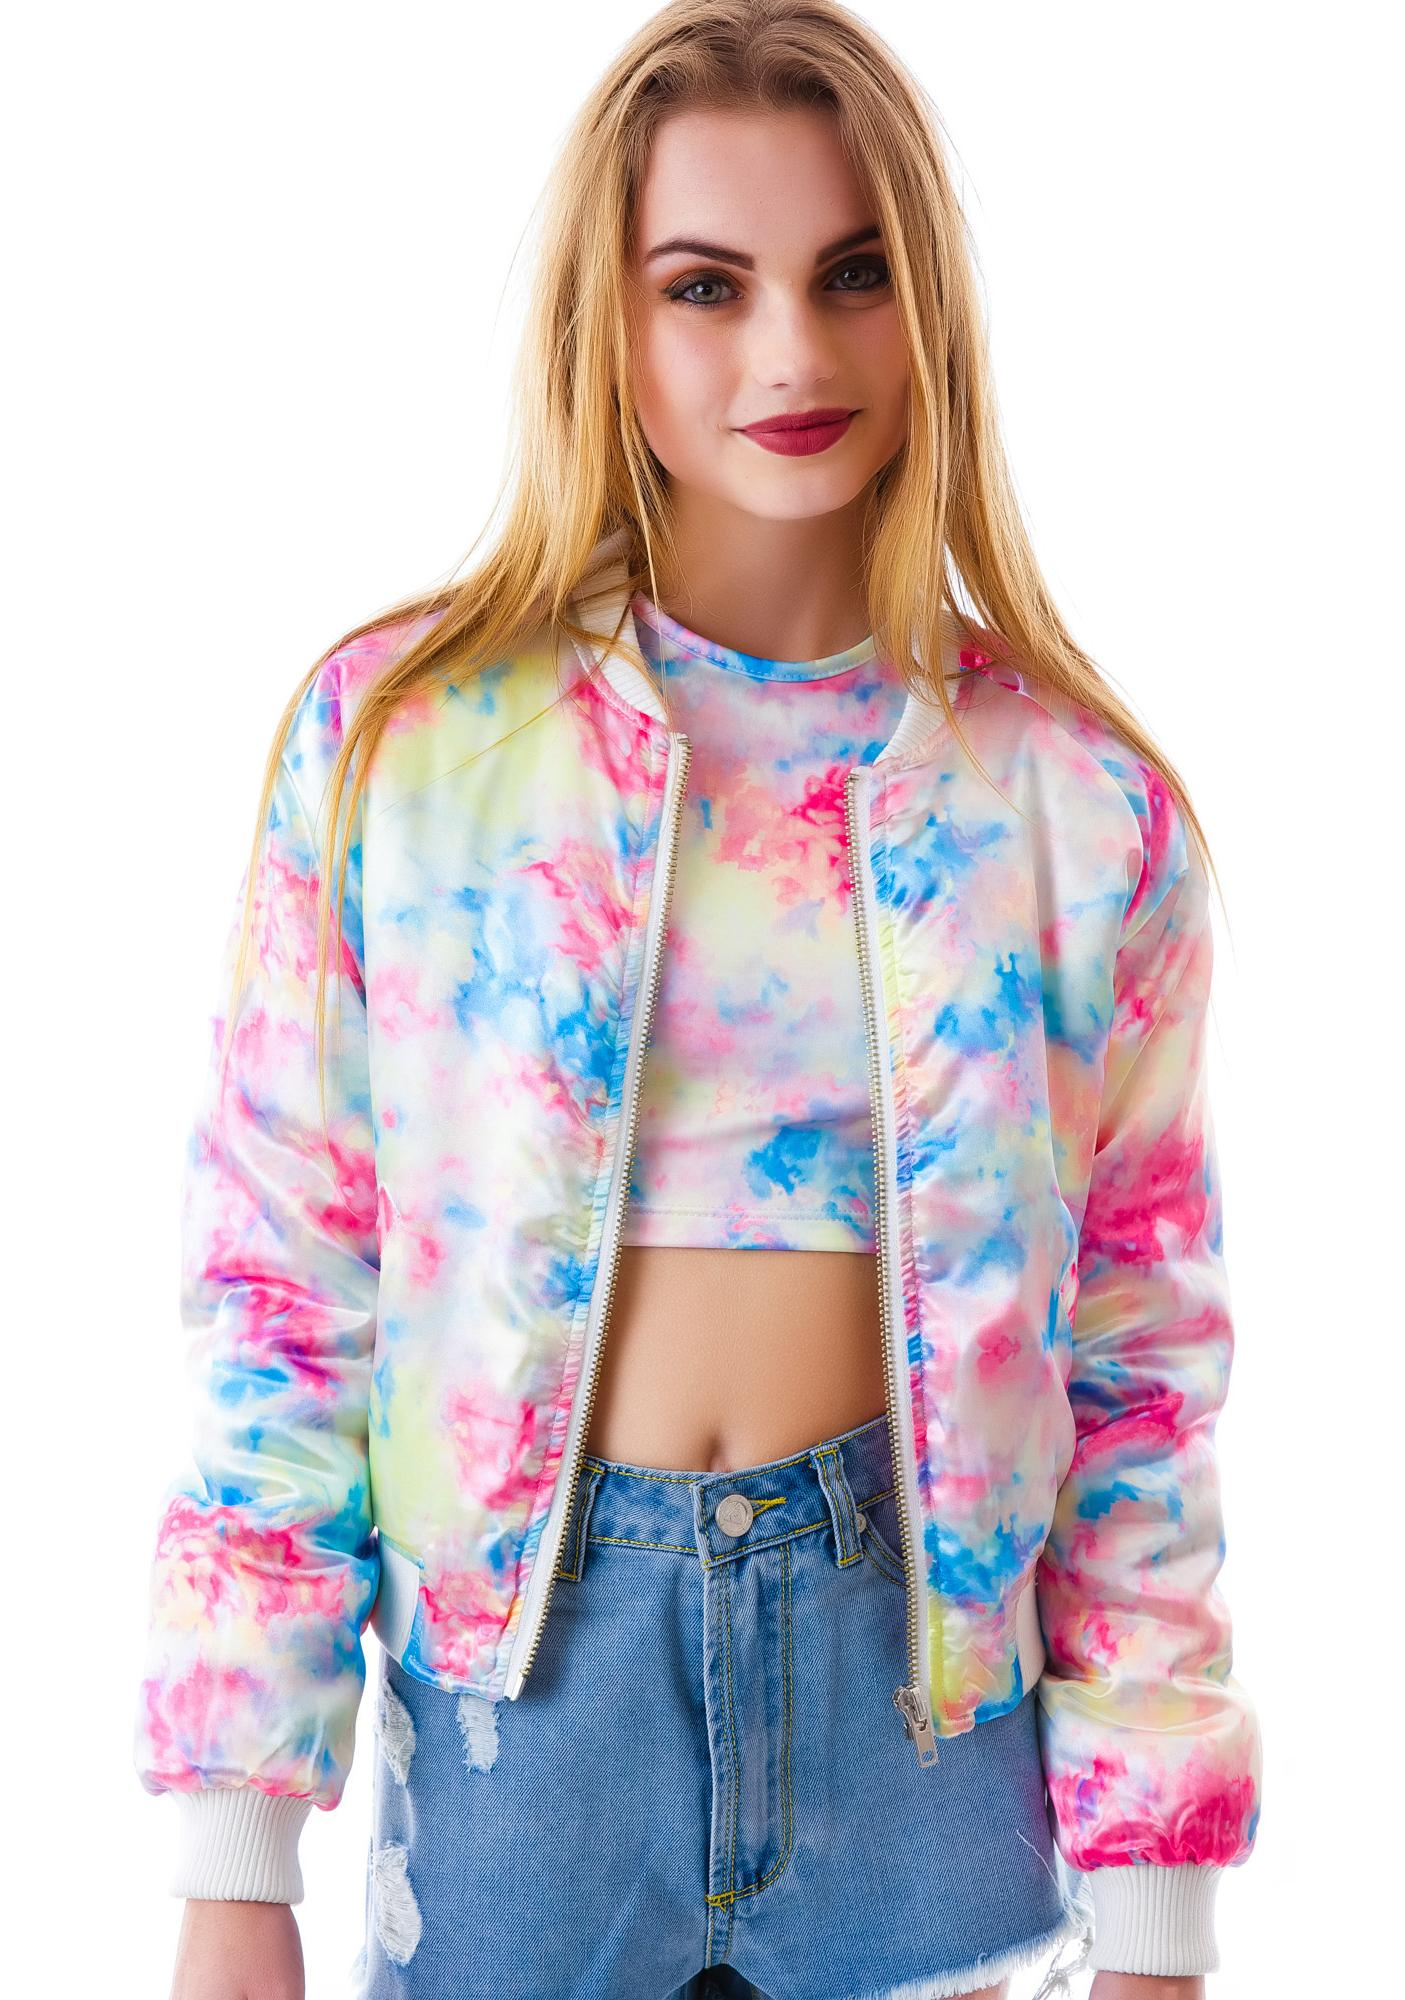 UNIF Don't Carey Bomber Jacket